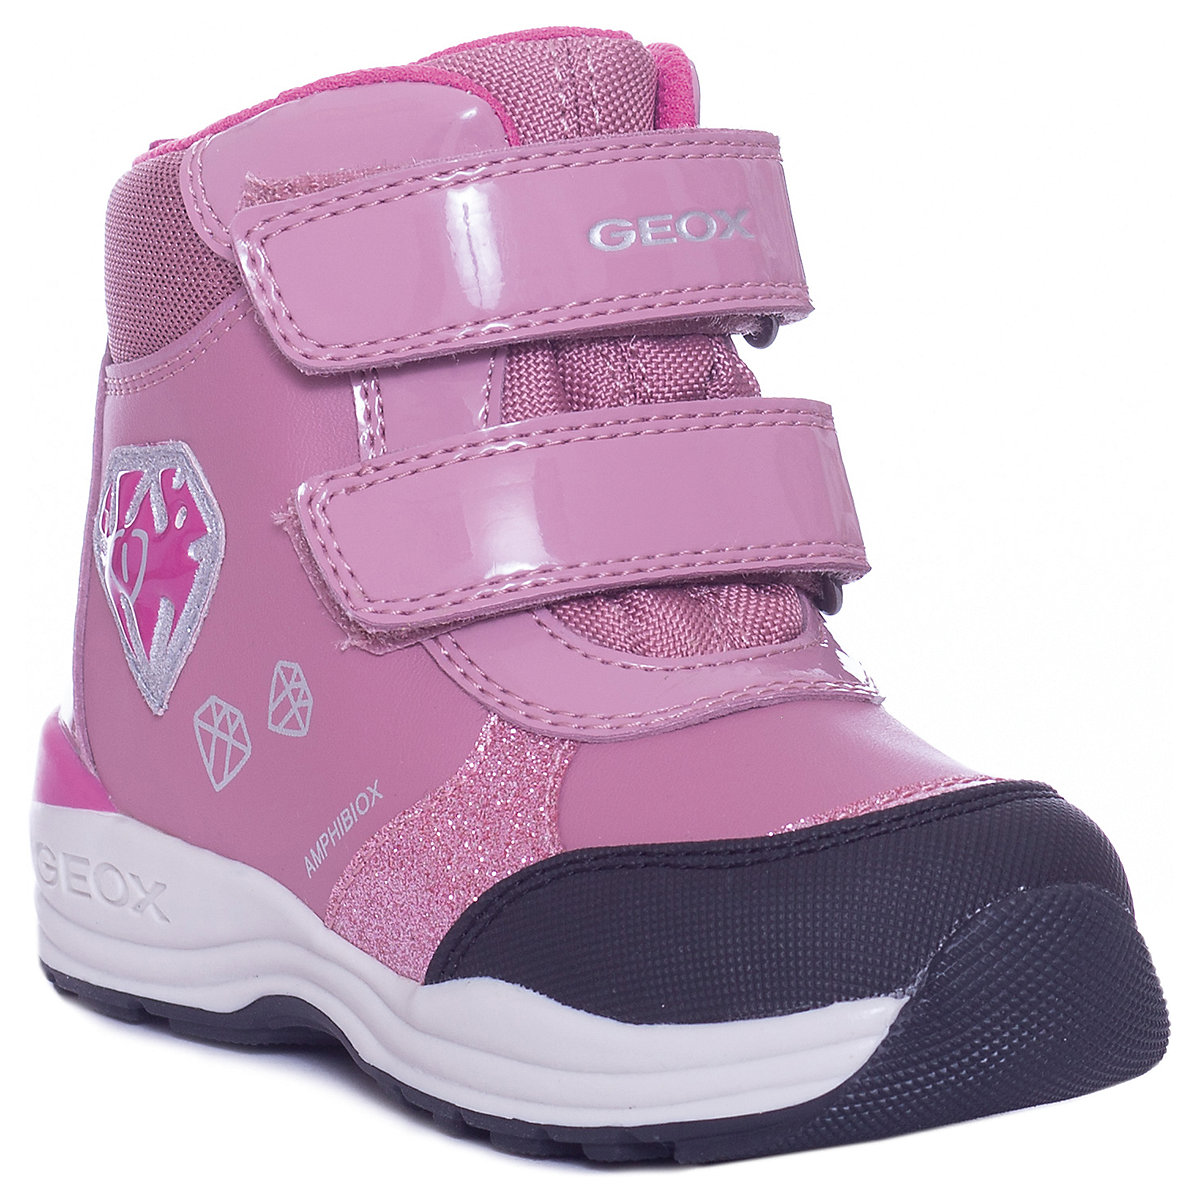 GEOX Boots 8786600 baby shoes For girl textile Winter шарм из серебра valtera 79905